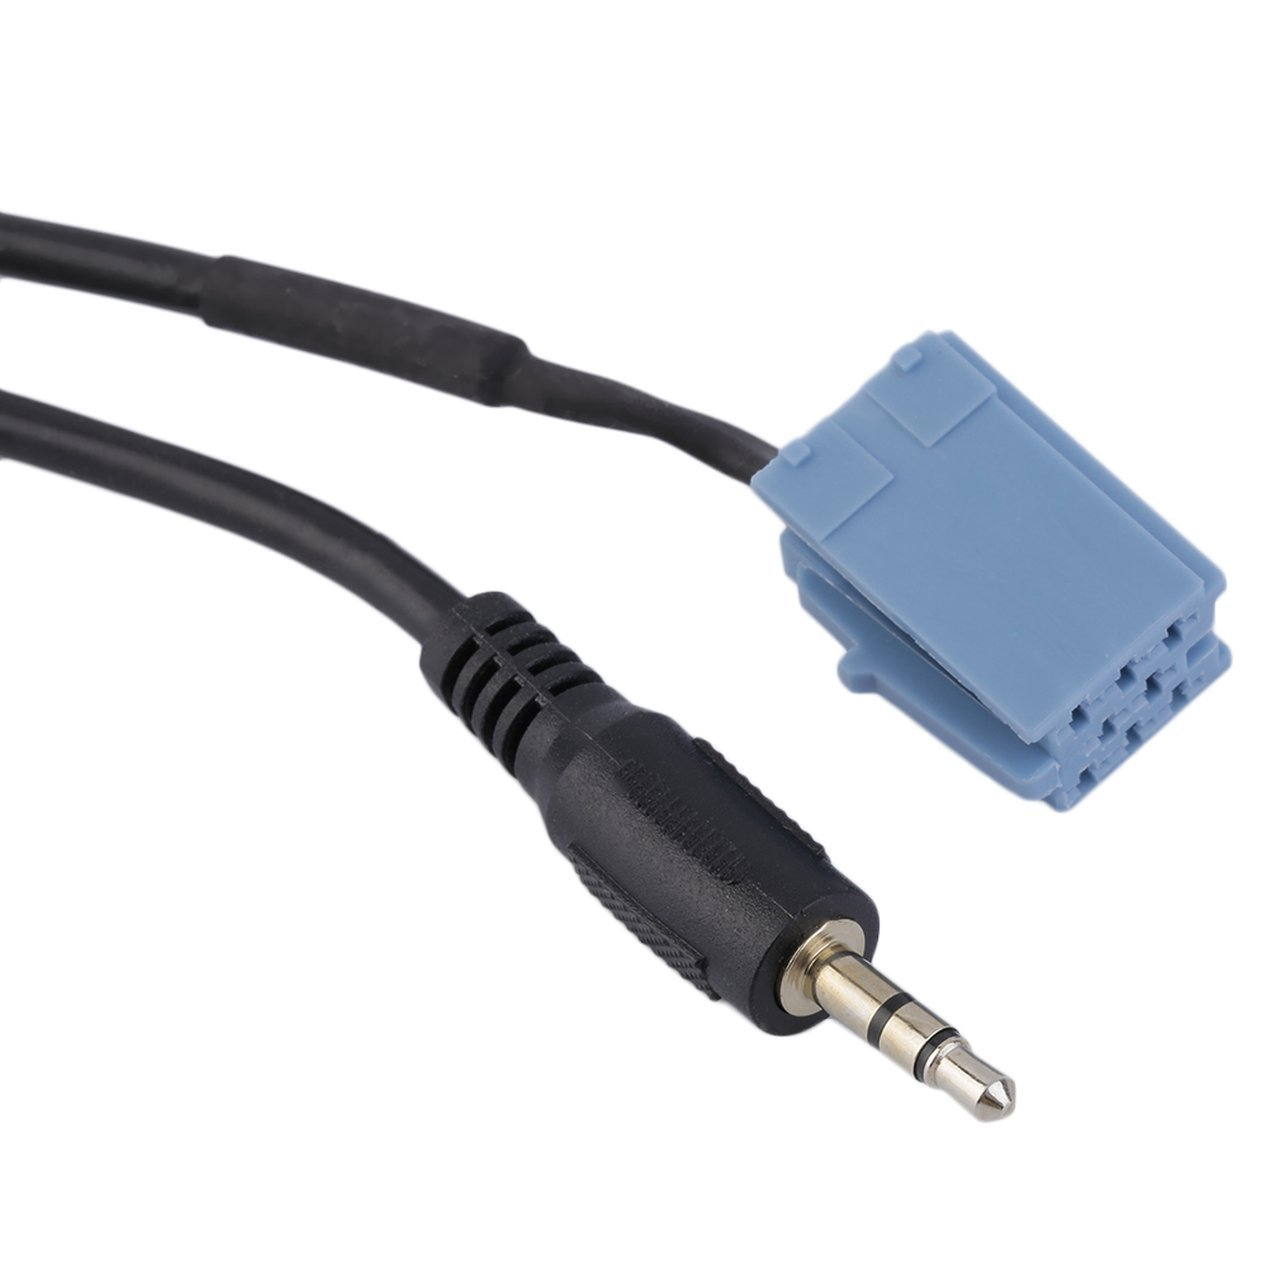 Monllack Aux Kabel Auto Audio Adapter Teile Audio F/ür Blaupunkt Autoradio 2000-2010 BLA-3.5MM.Cable Auto Audio Adapter